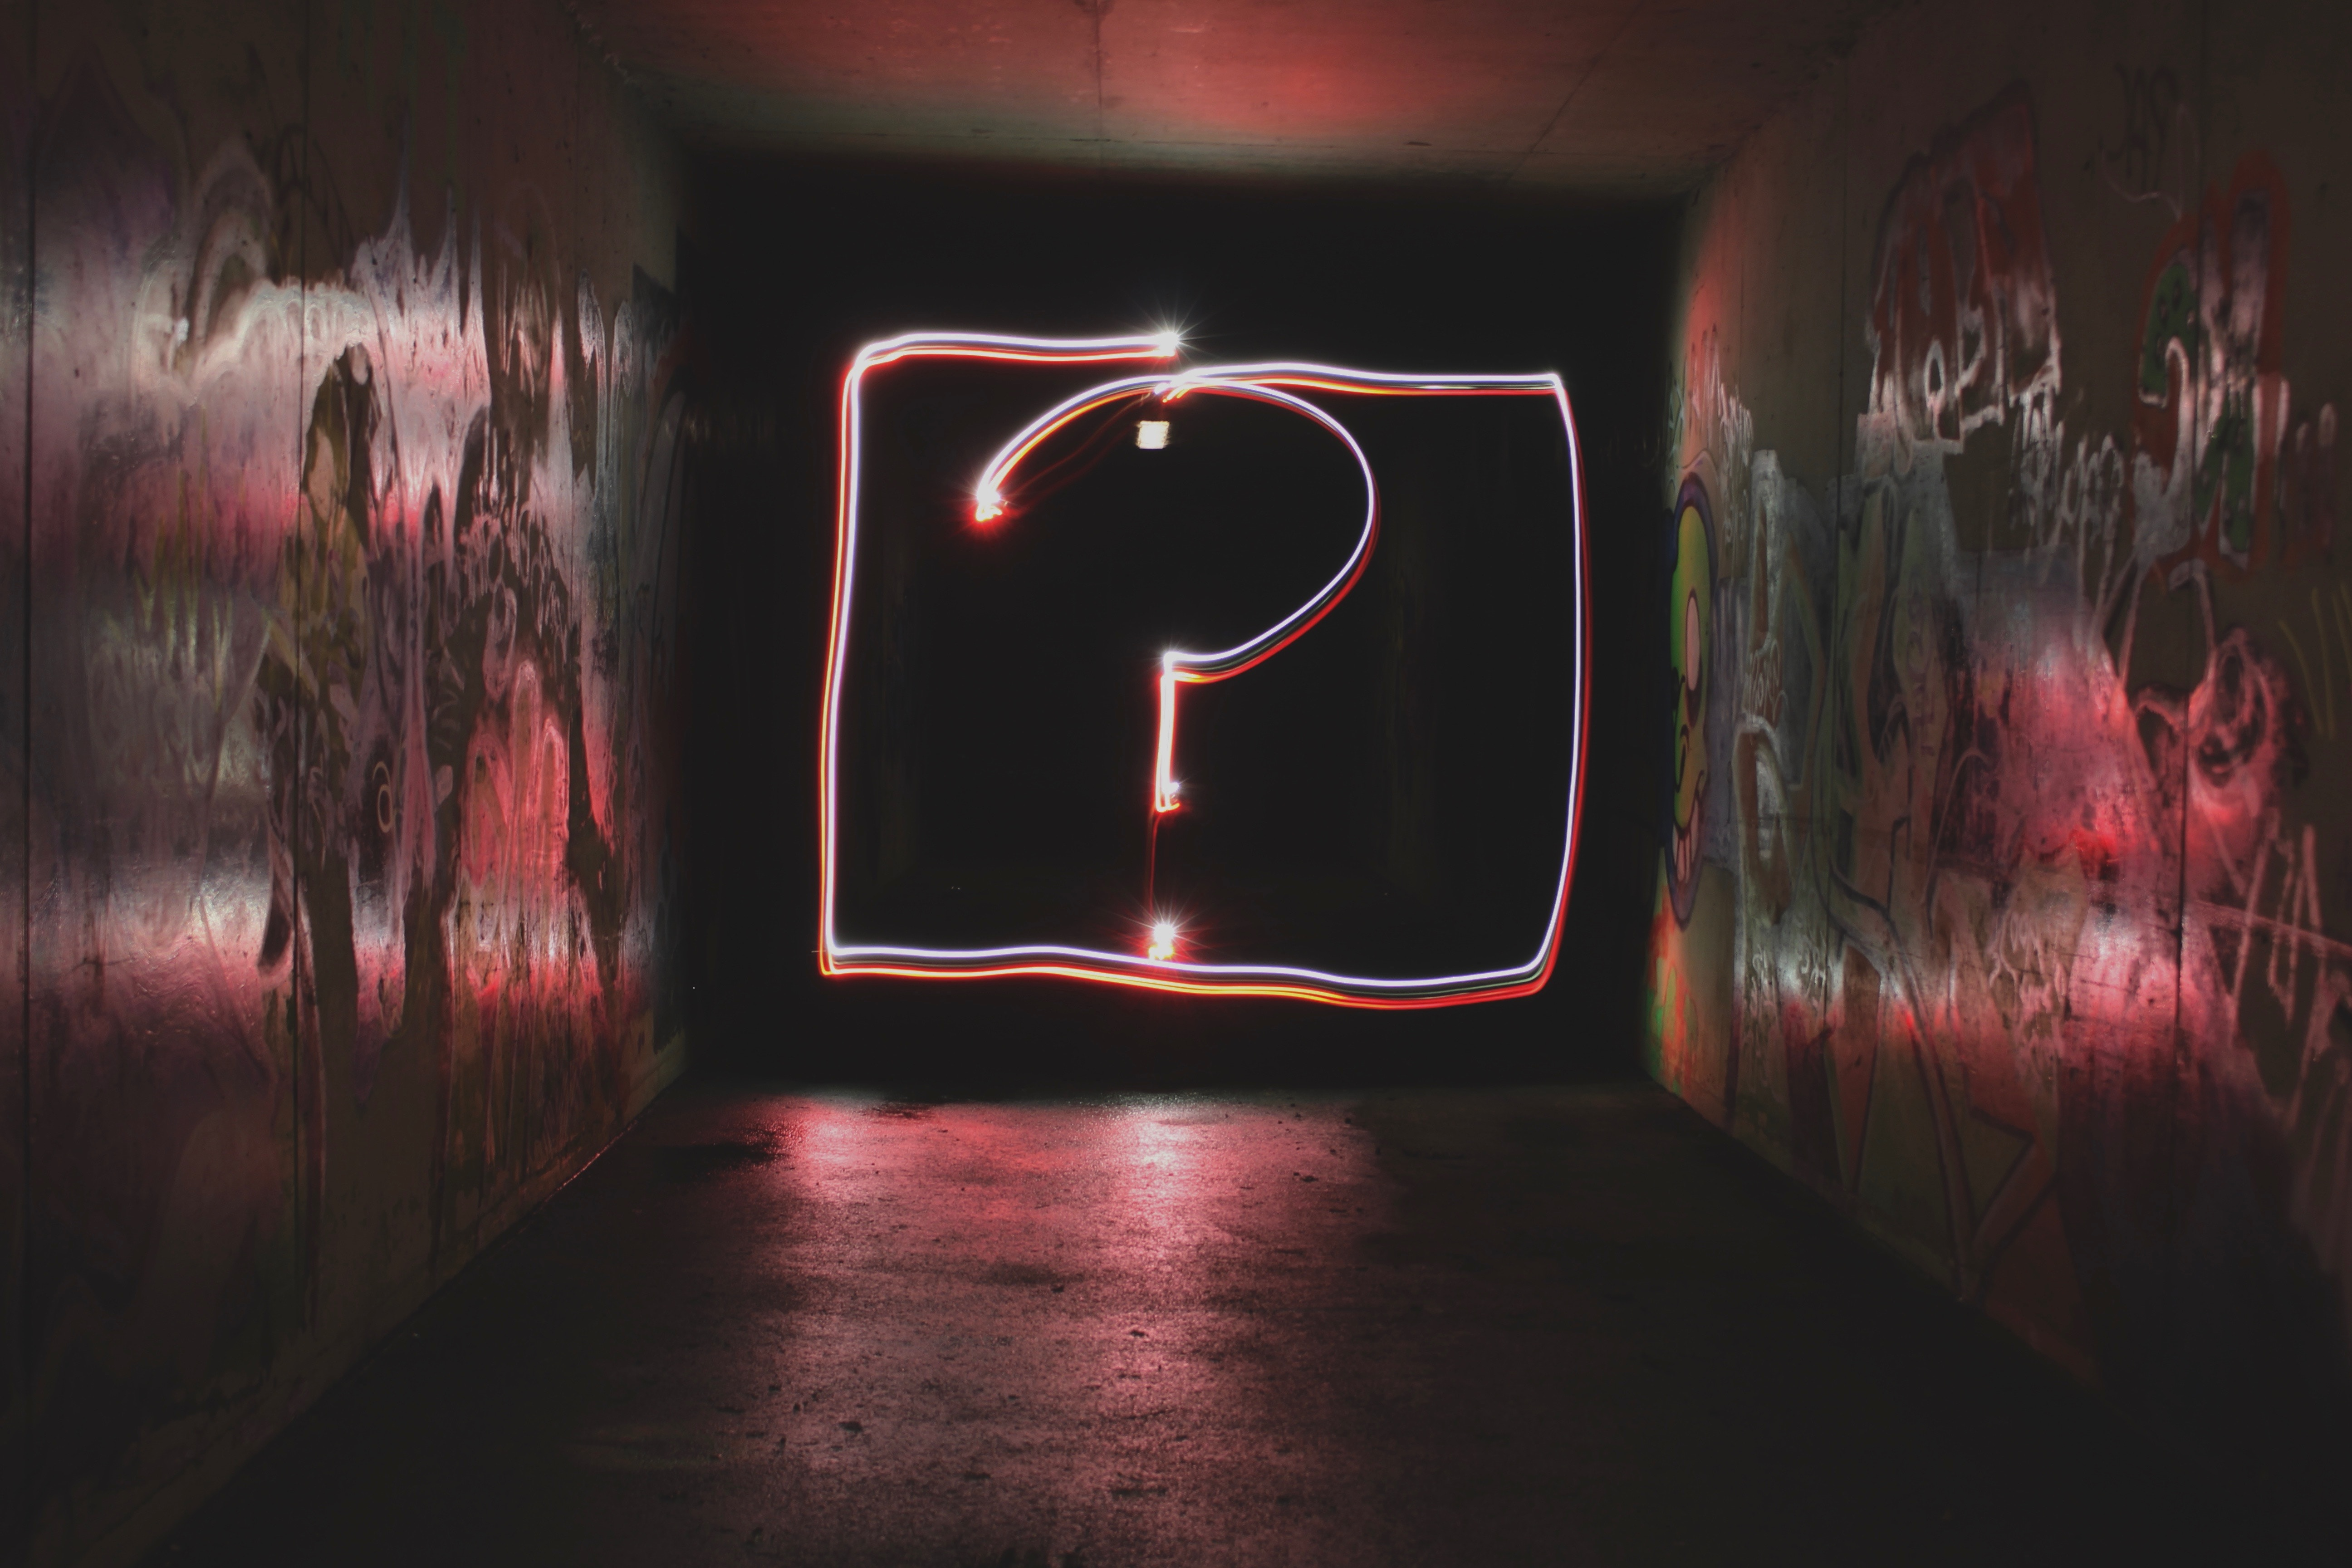 Image of a neon question mark